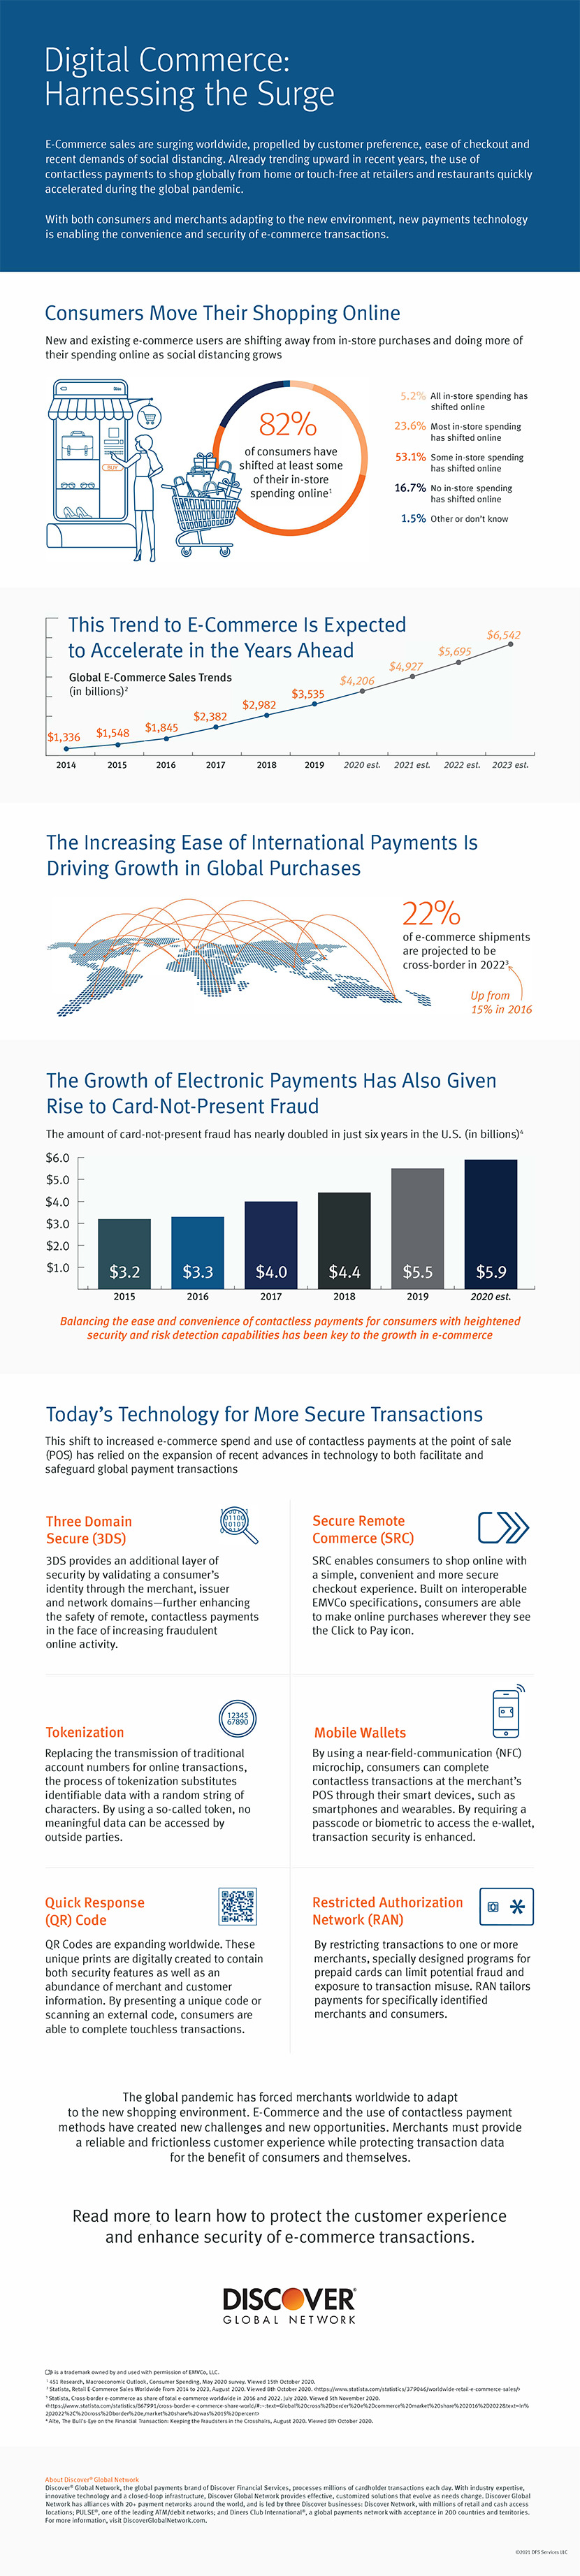 e-commerce payment trends infographic